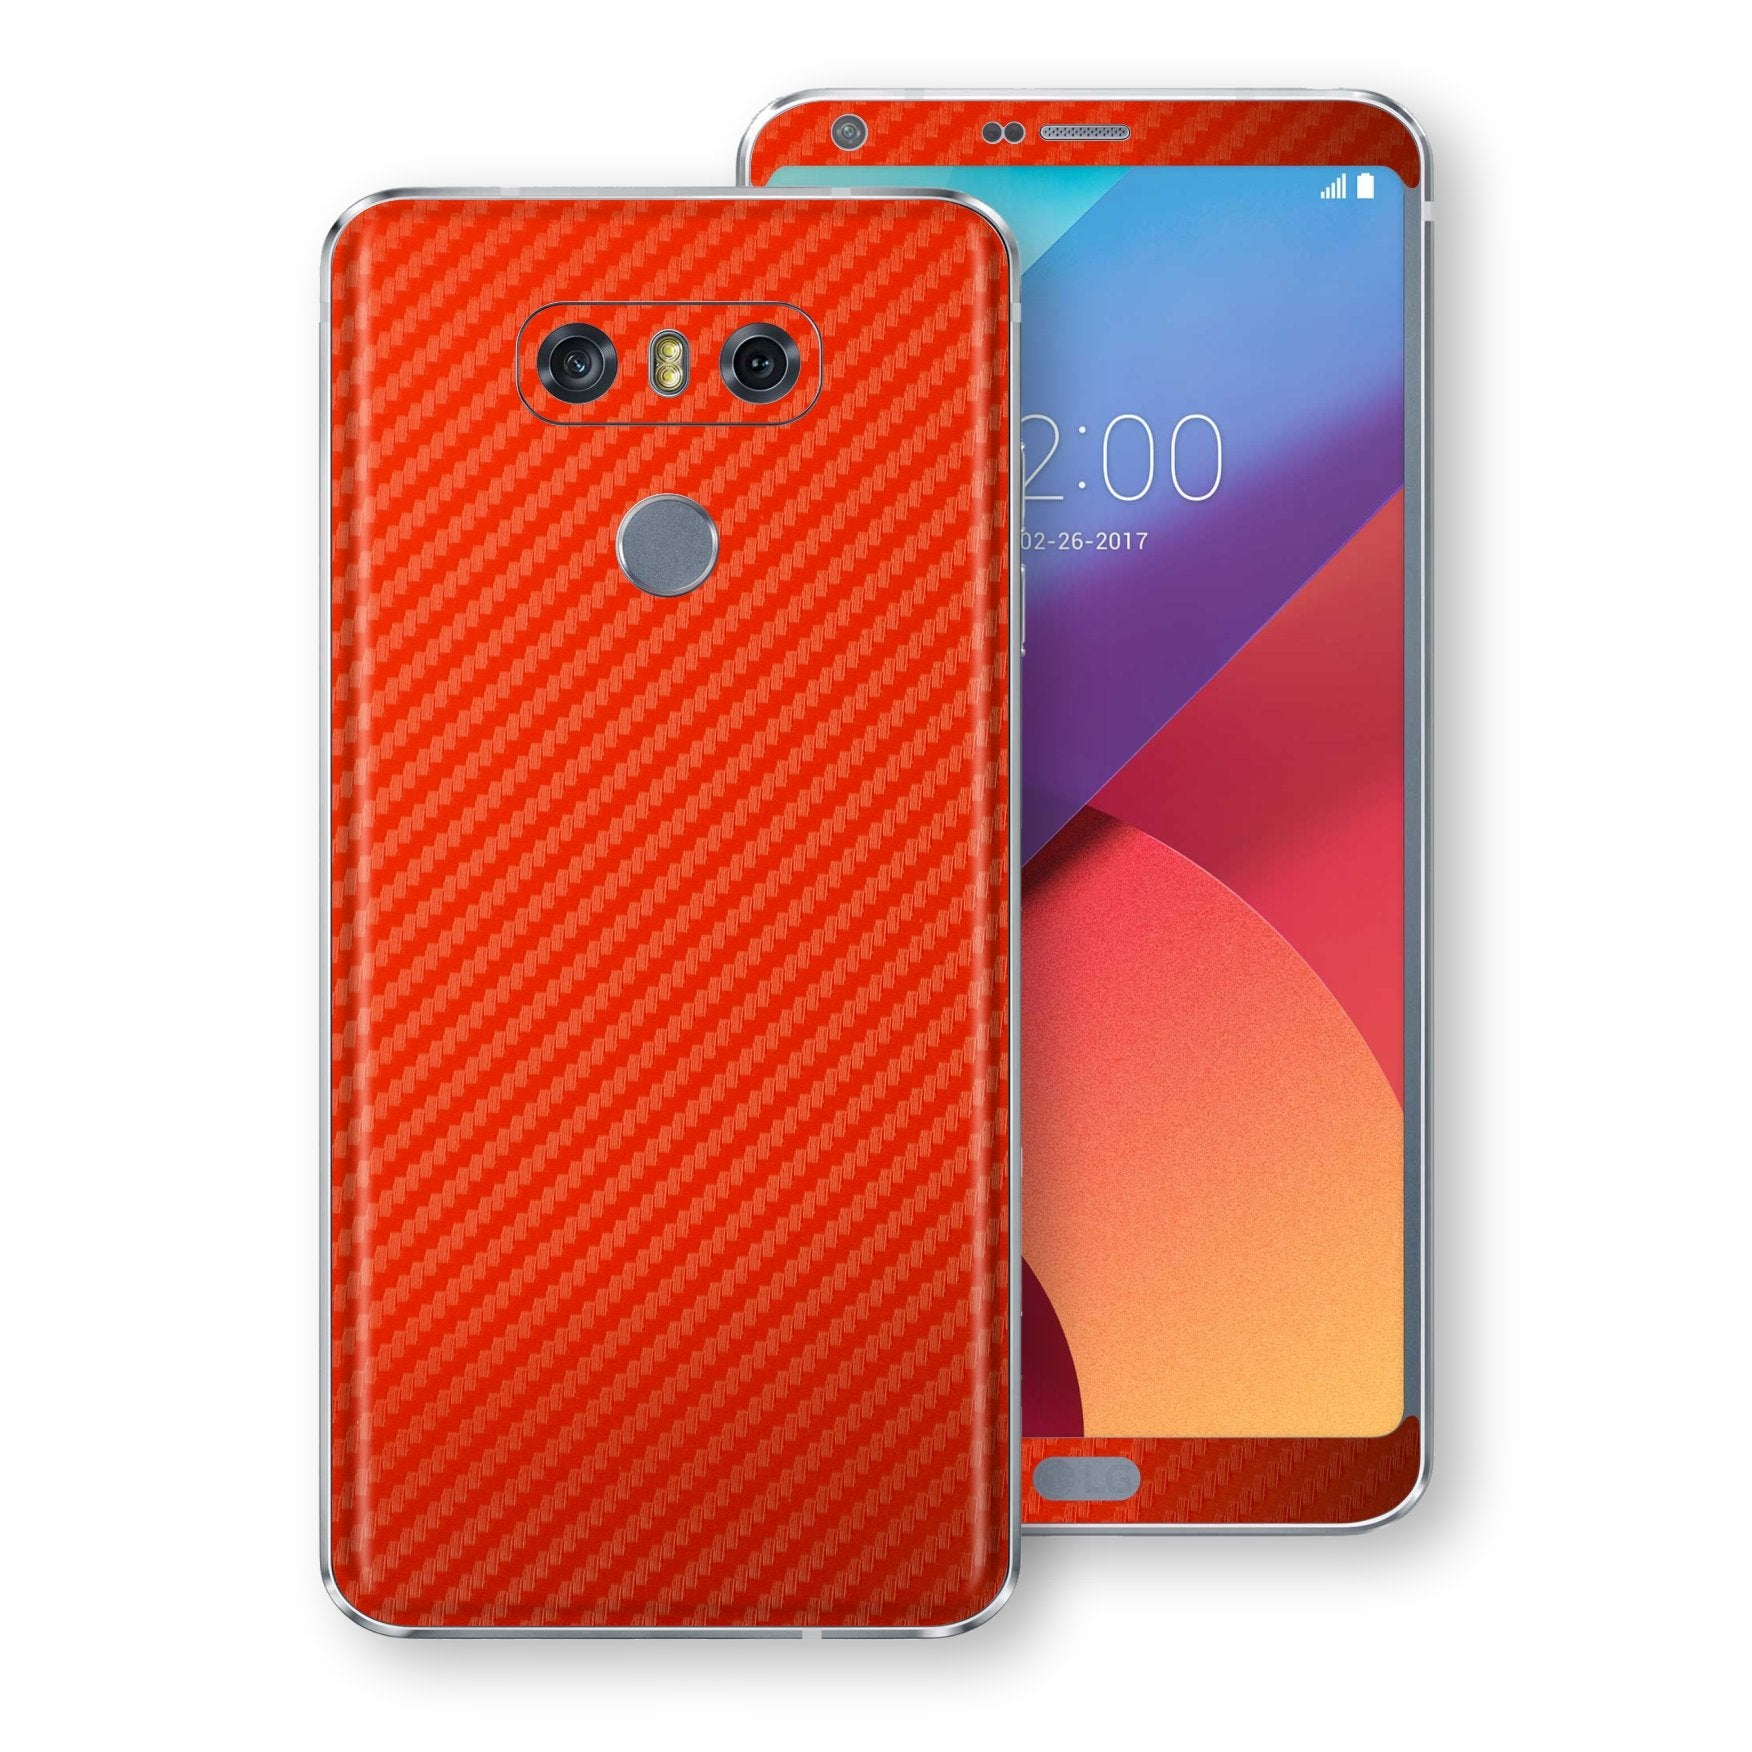 LG G6 3D Textured Red Carbon Fibre Fiber Skin, Decal, Wrap, Protector, Cover by EasySkinz | EasySkinz.com